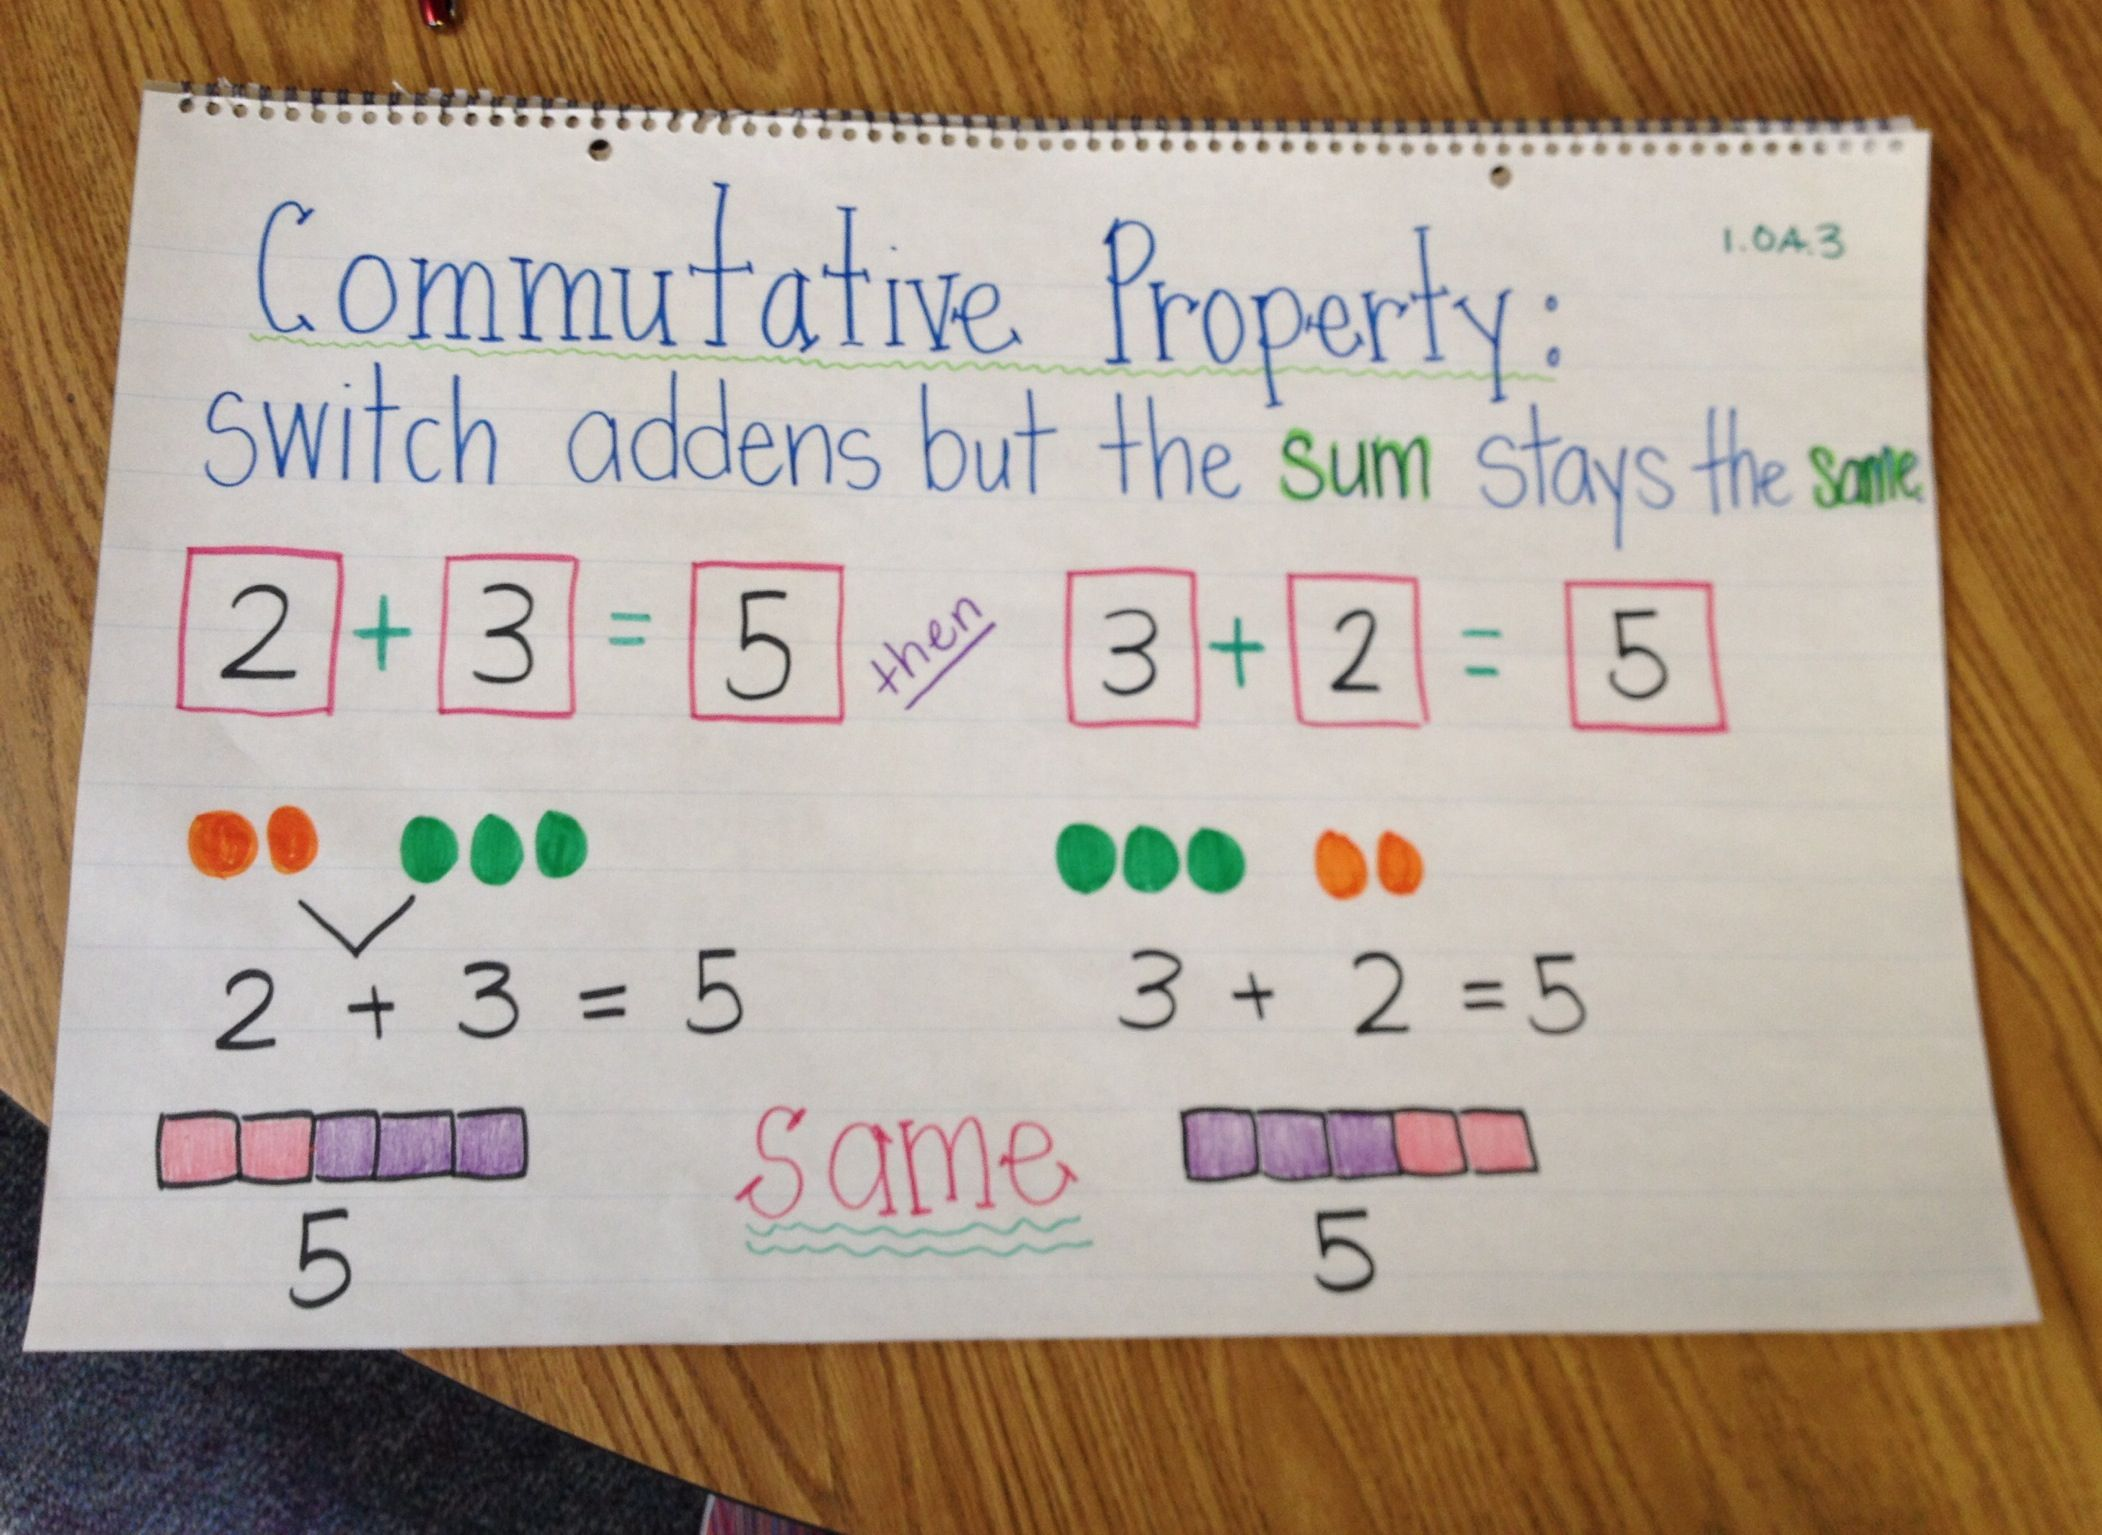 Worksheets Commutative Property Of Addition Worksheets 3rd Grade best 25 commutative property ideas on pinterest teaching of addition miriam guerrero